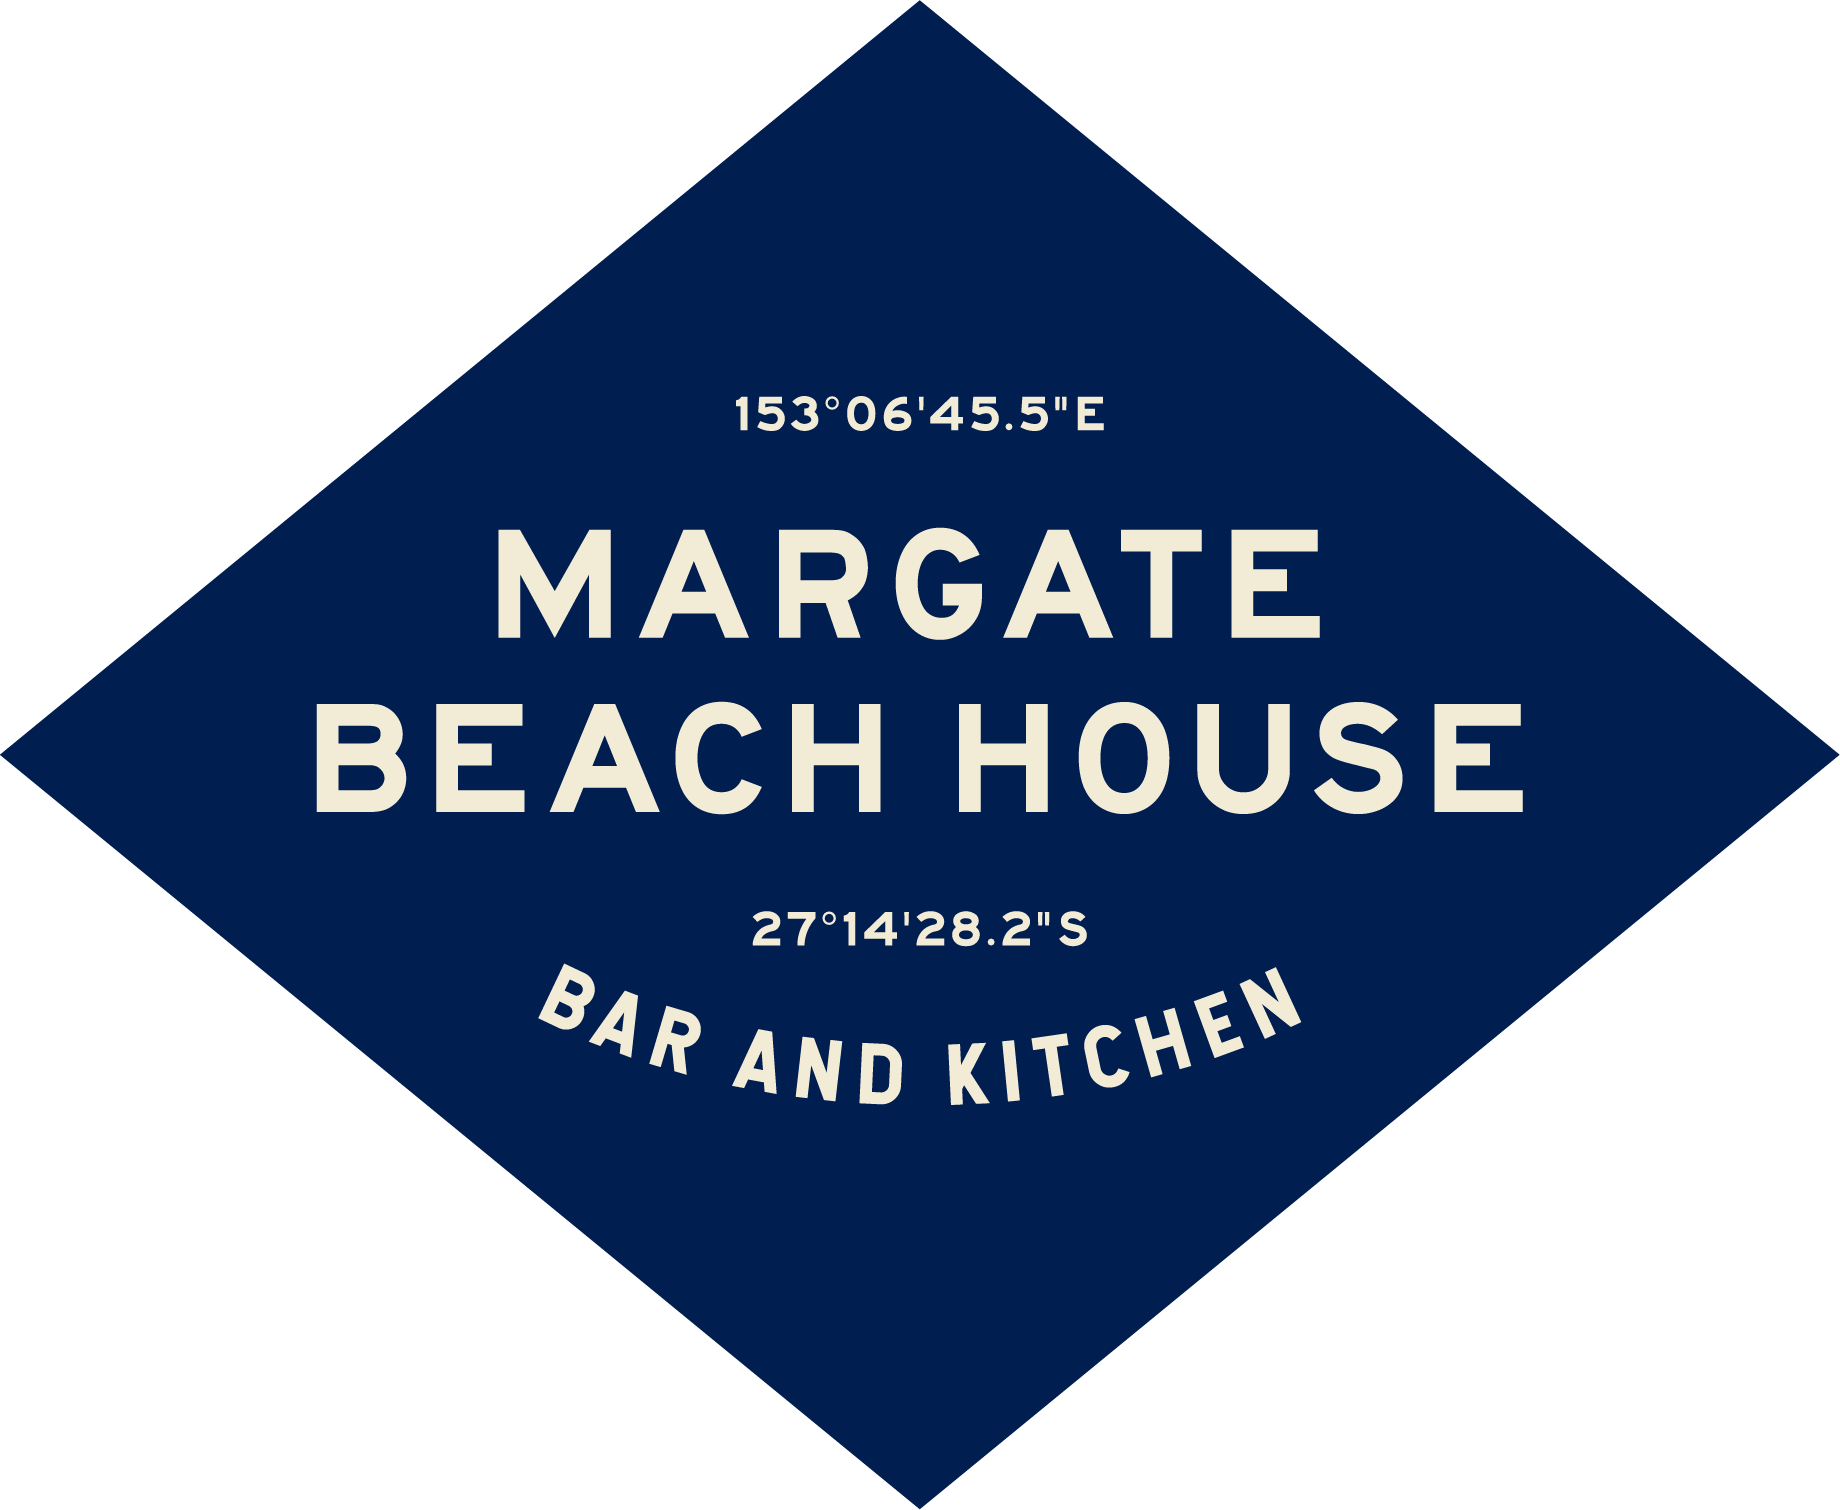 Margate Beach House